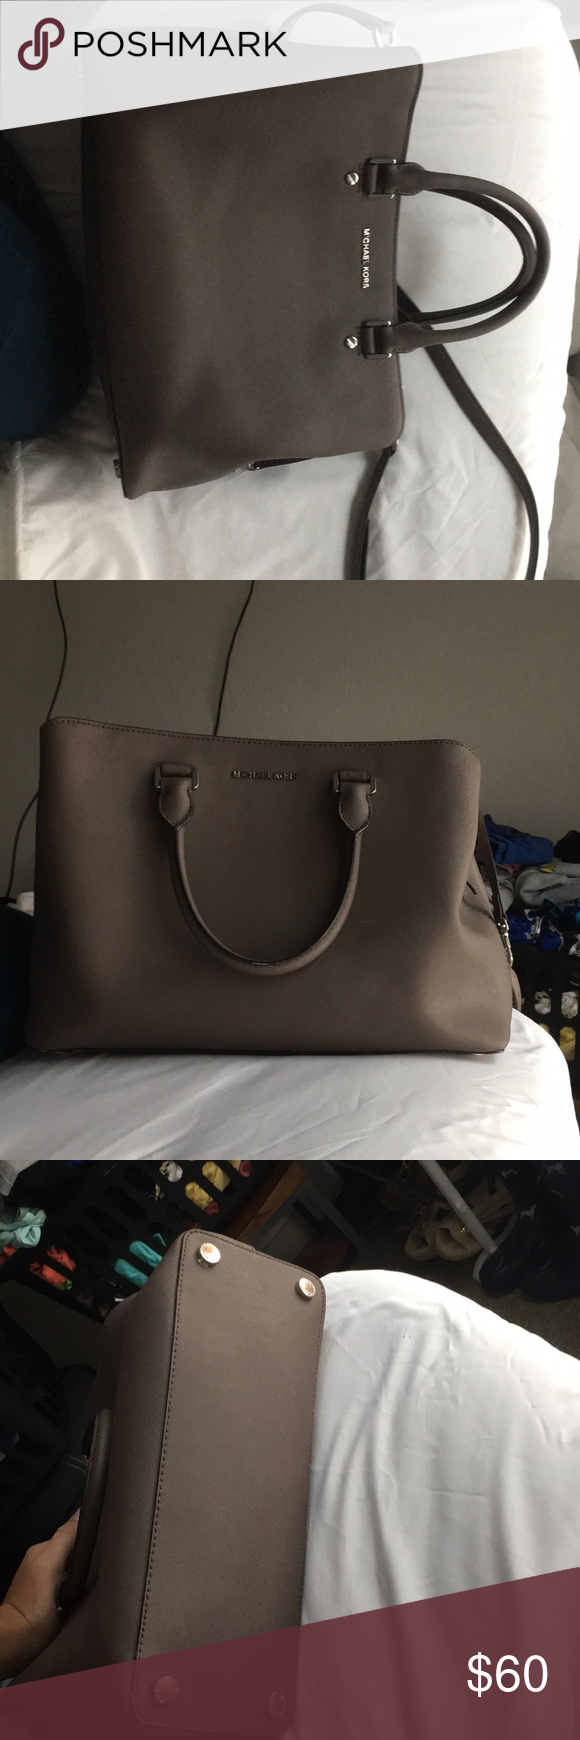 623b7a30b9ae Michael Kors medium/Large size purse Had this purse for maybe two years and  I